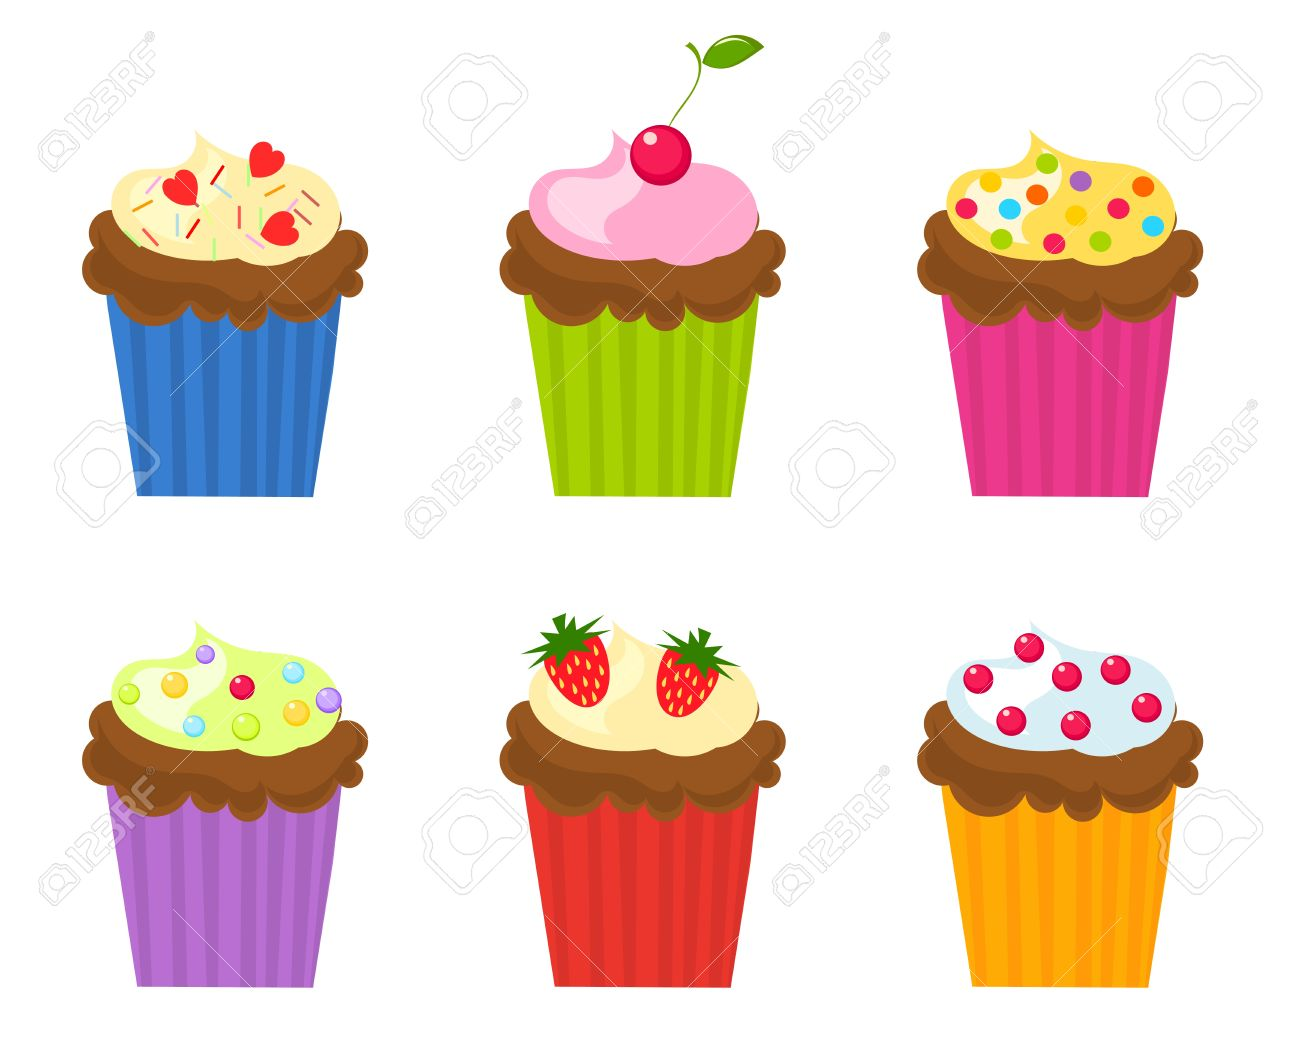 Fairy cakes clipart 10 » Clipart Station.